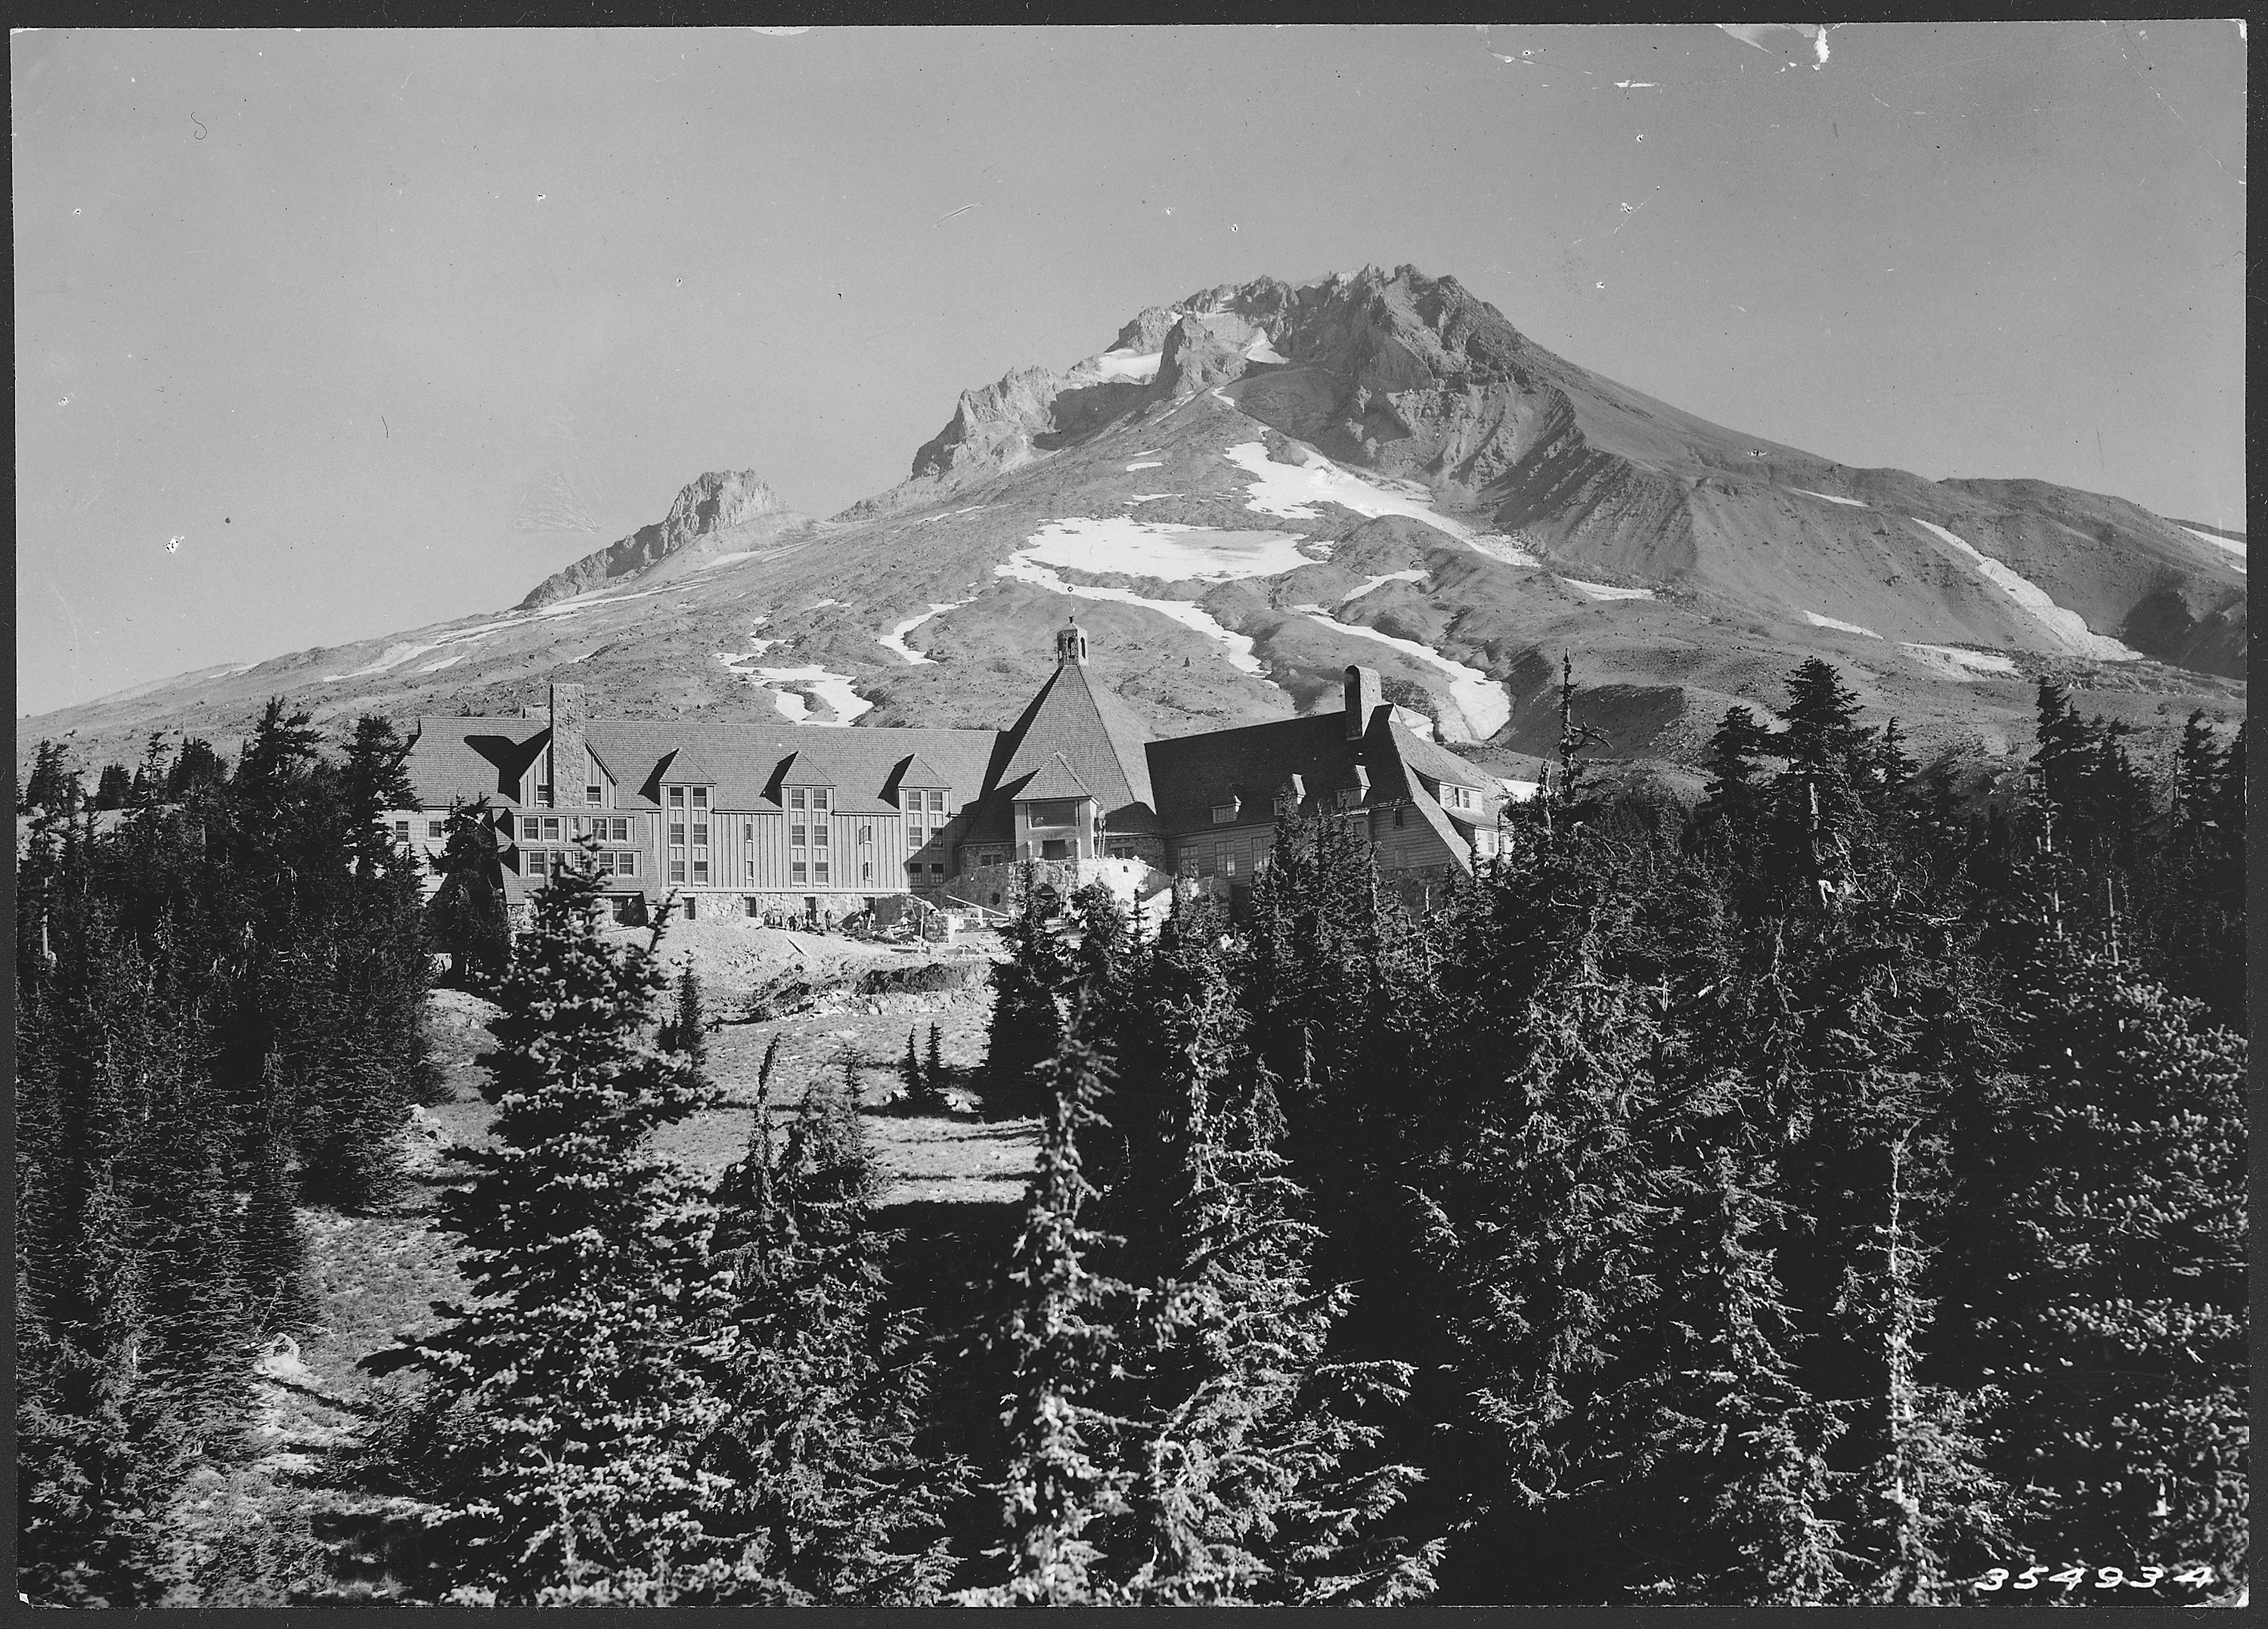 File:Timberline Lodge, built by WPA, Mount Hood National